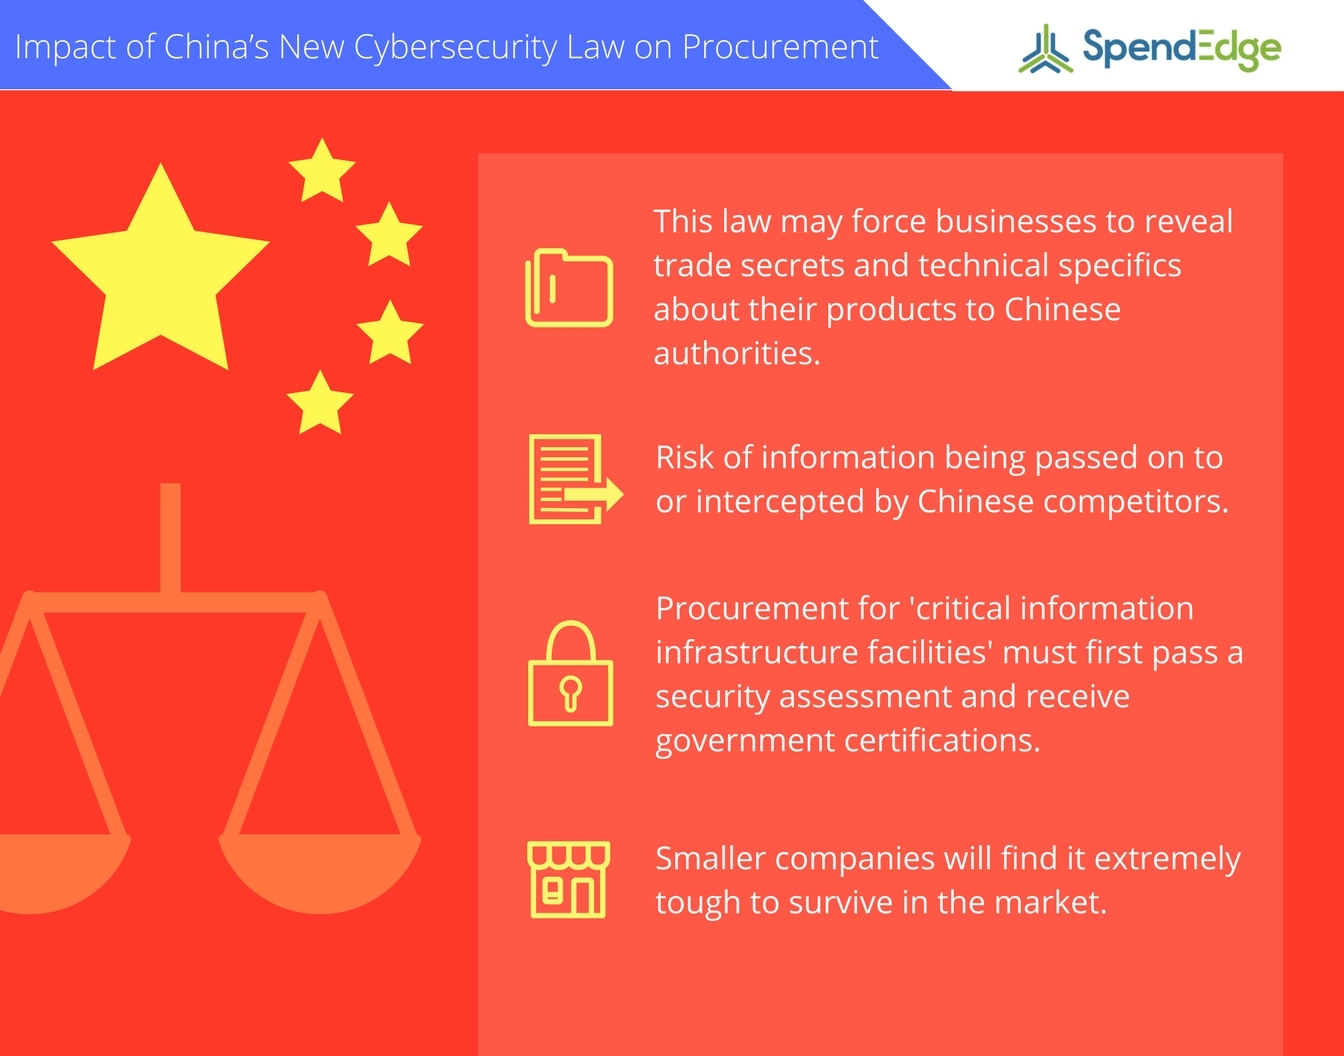 China's New Cybersecurity Law Will Trigger Procurement Complications. (Graphic: Business Wire)